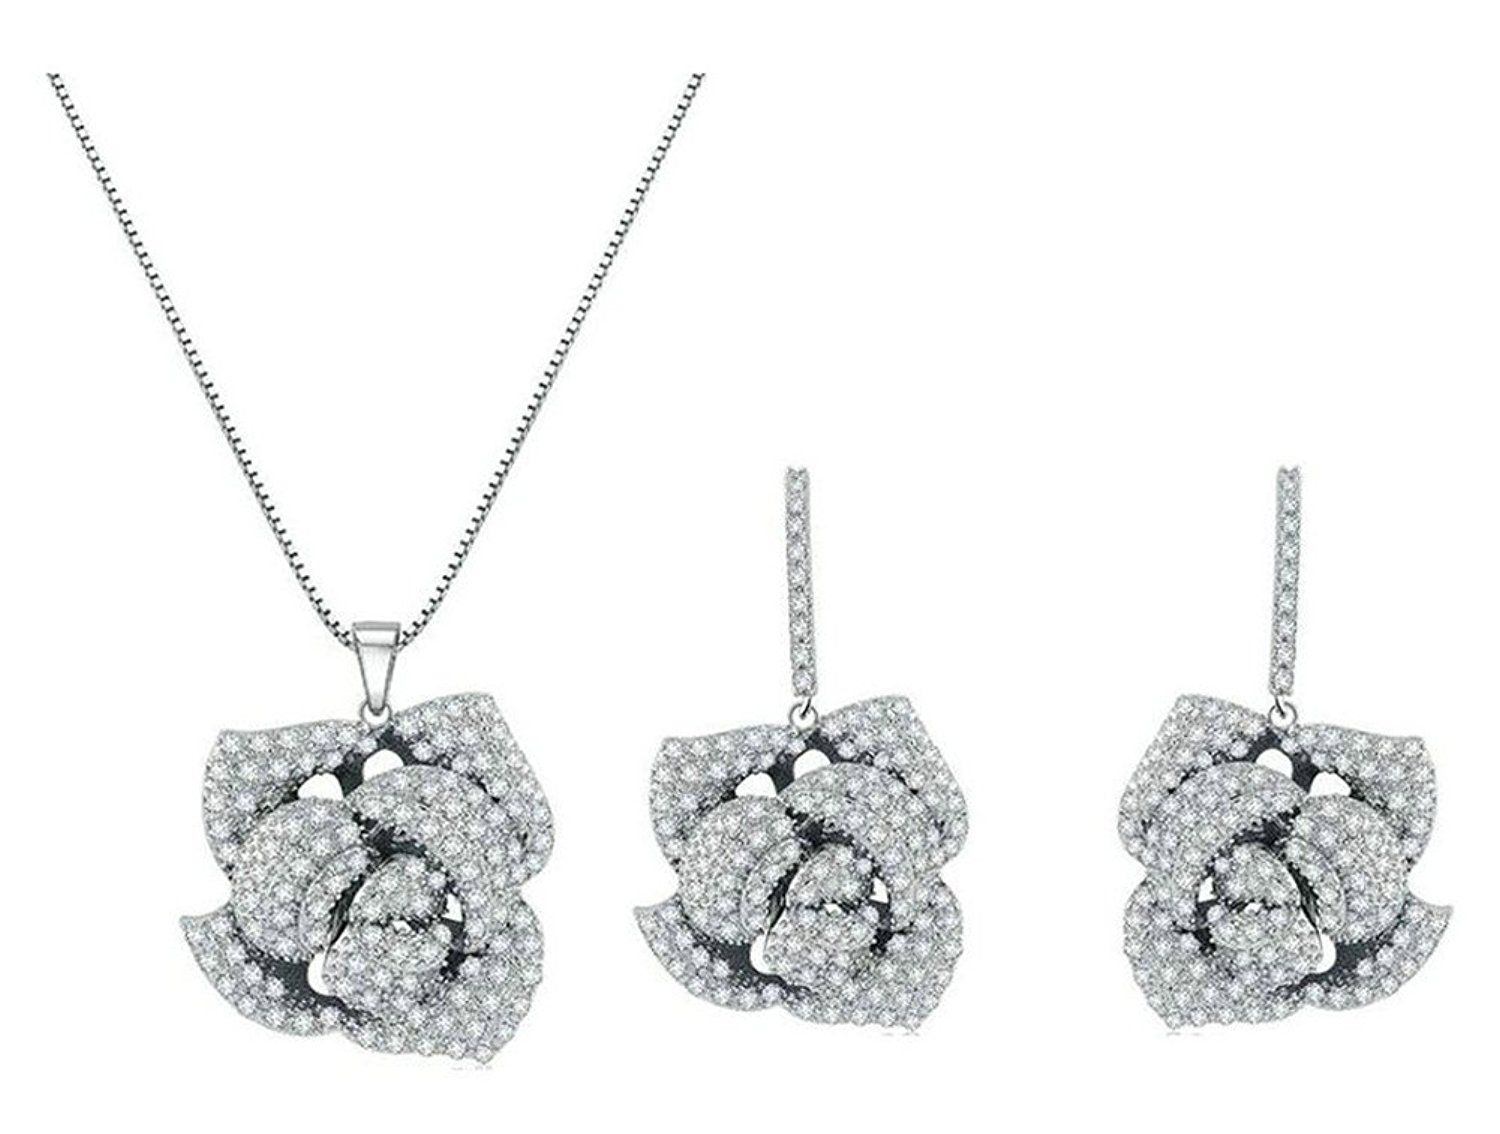 Babao jewelry eternal rose dazzling clear cz crystal k platinum